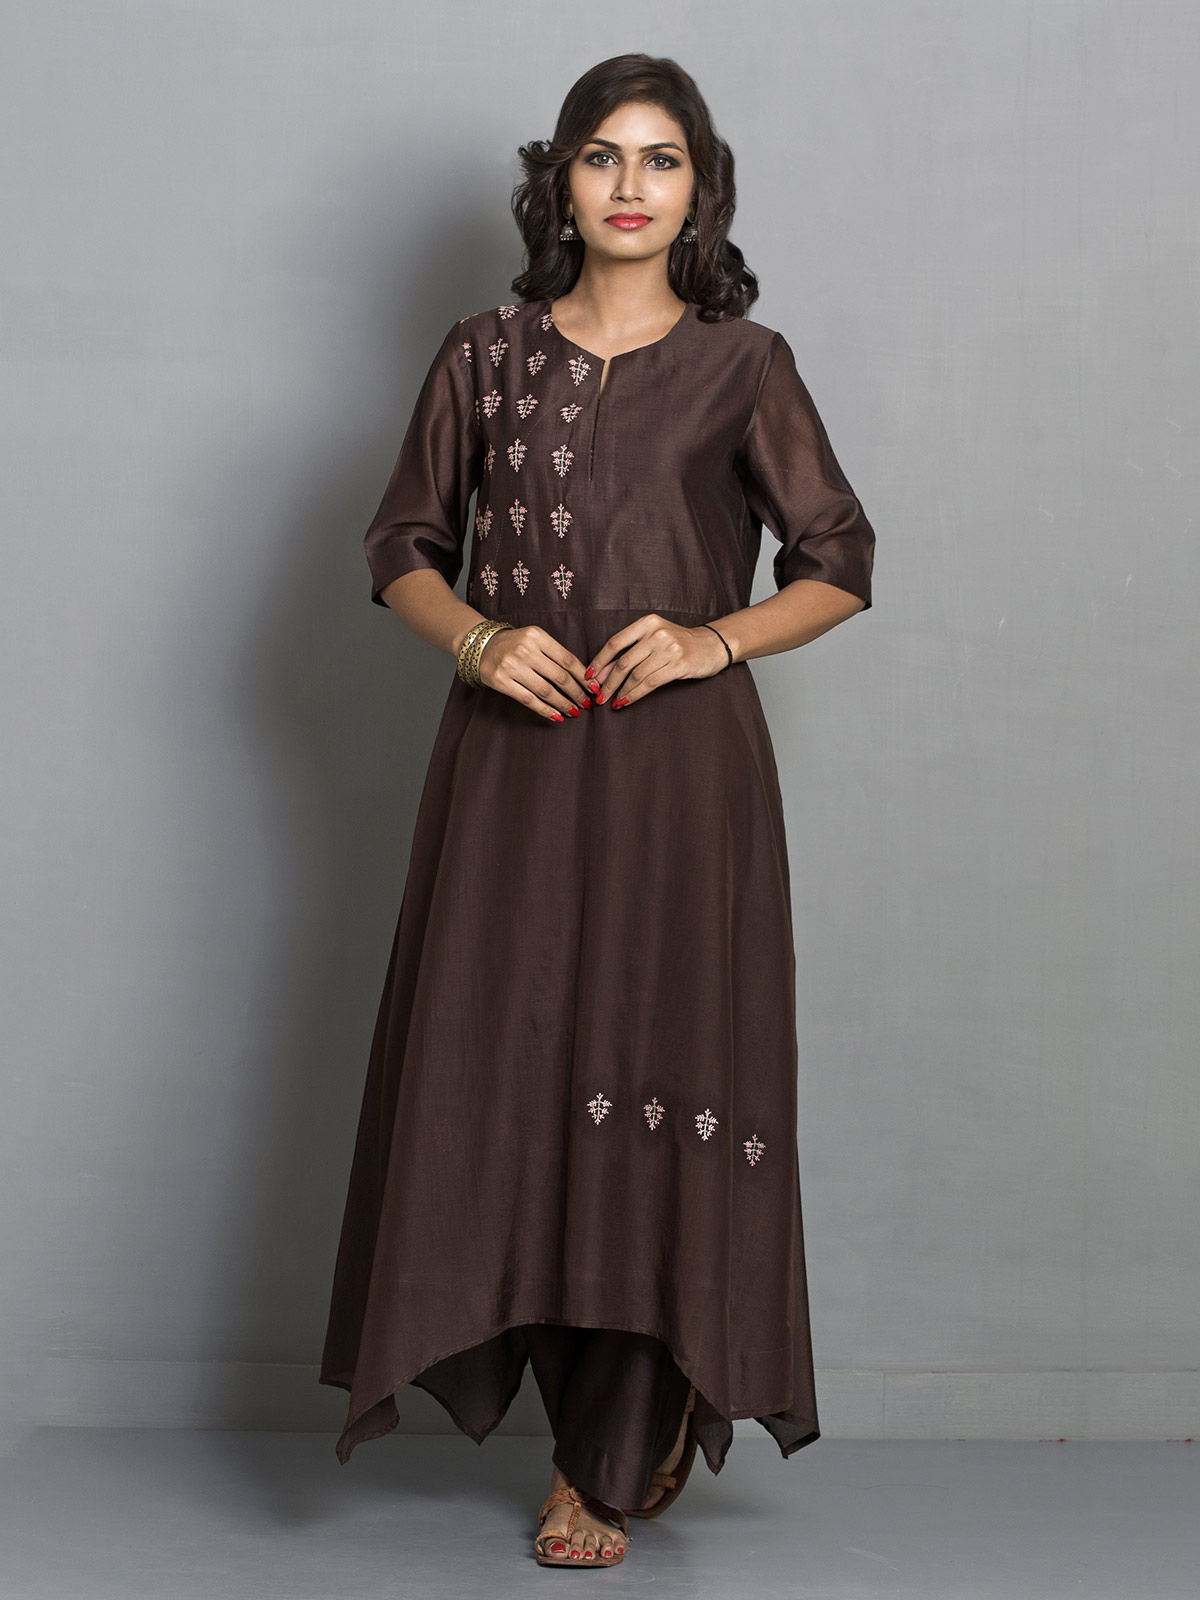 Chocolate Brown Flared Asymmetric Chanderi Tunic with Embroidered Motifs